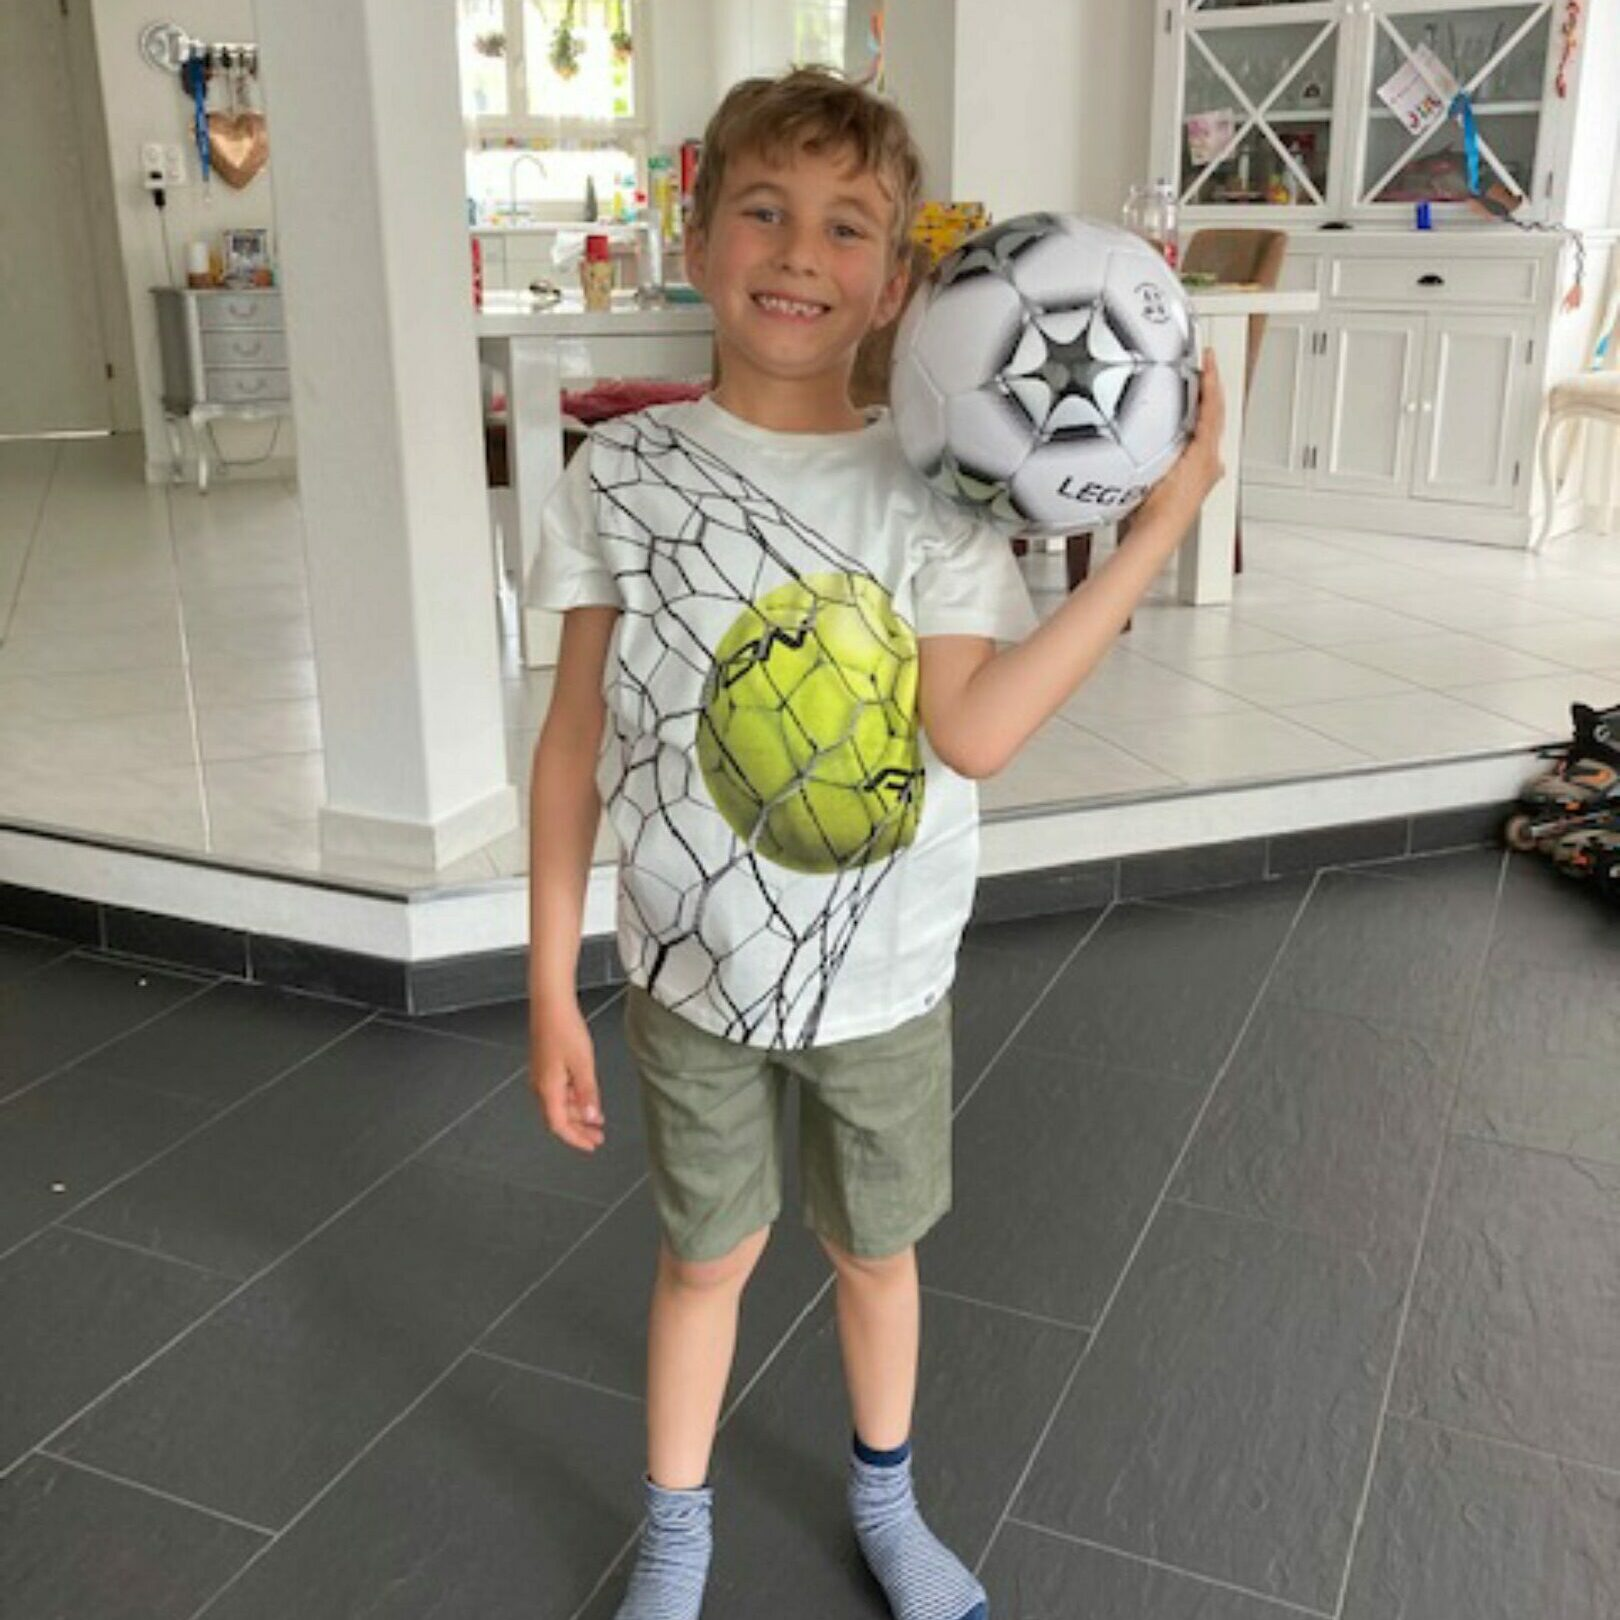 Here's Jaro wearing a cool t-shirt from Molo combined with comfortable shorts from Hust & Claire ⚽️🩳😎  Thank you for sharing Laureen ❤️  Dette er Småpakke som vi forberedte